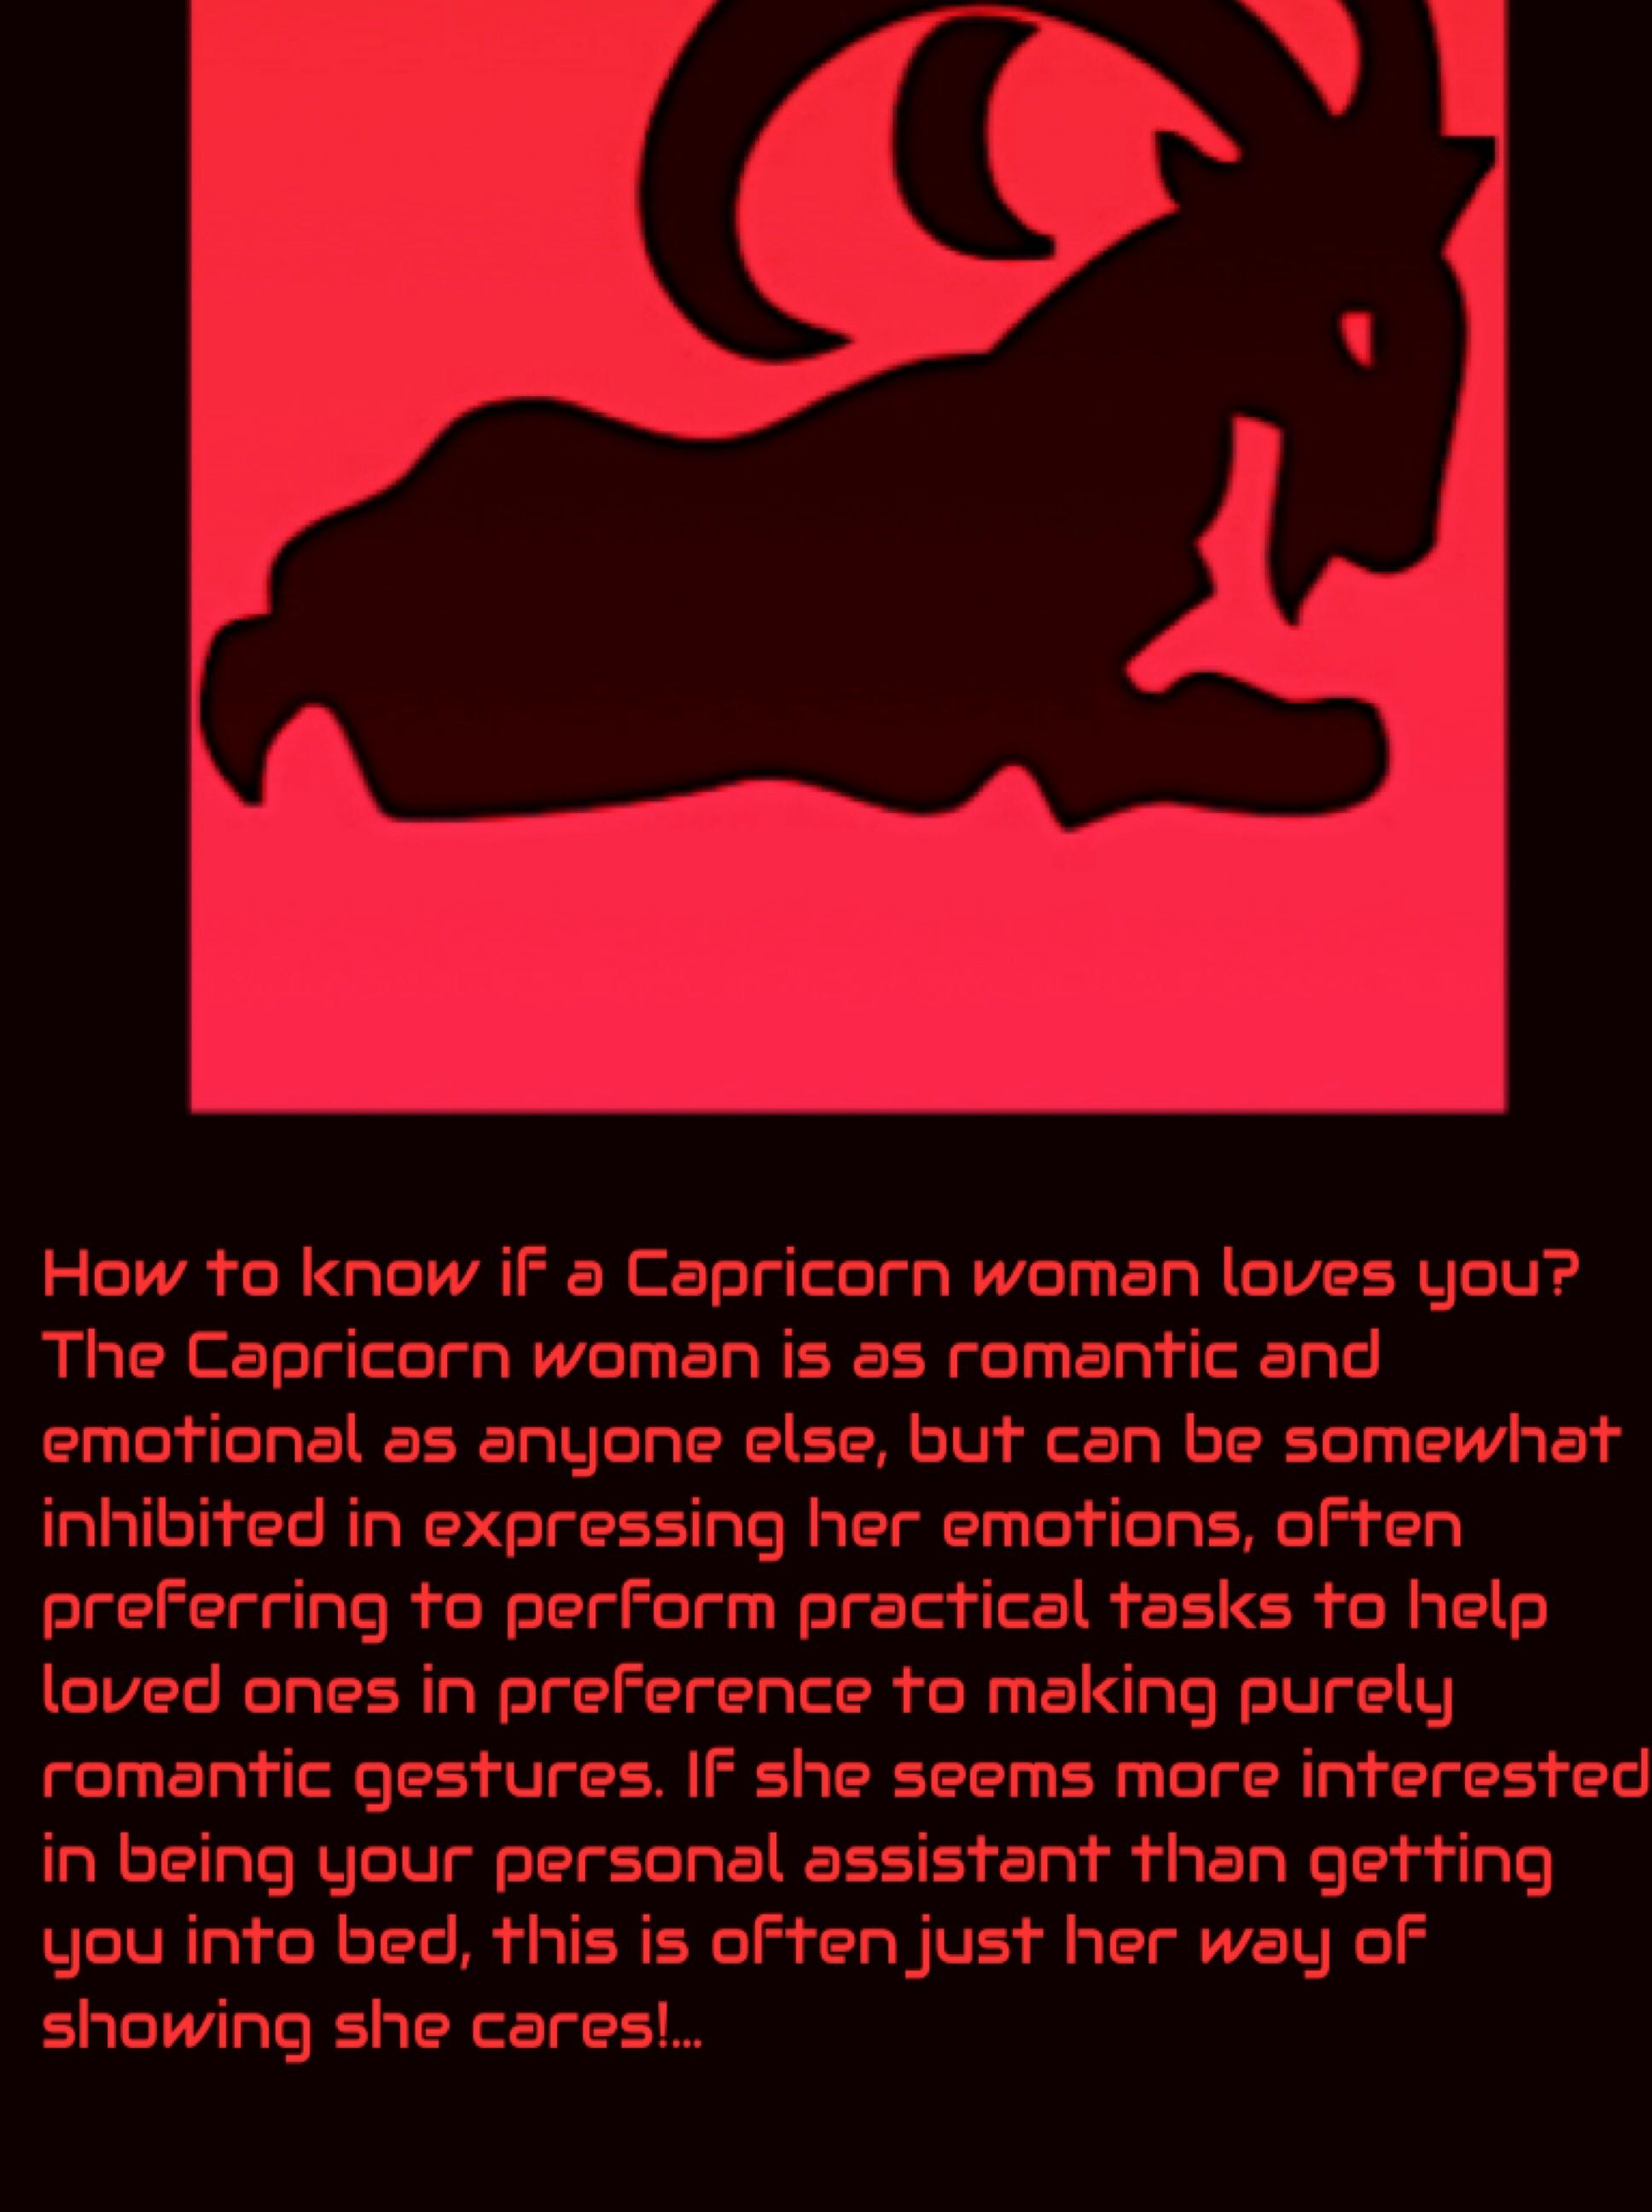 How to know if a Capricorn Woman Loves you  | capricorn